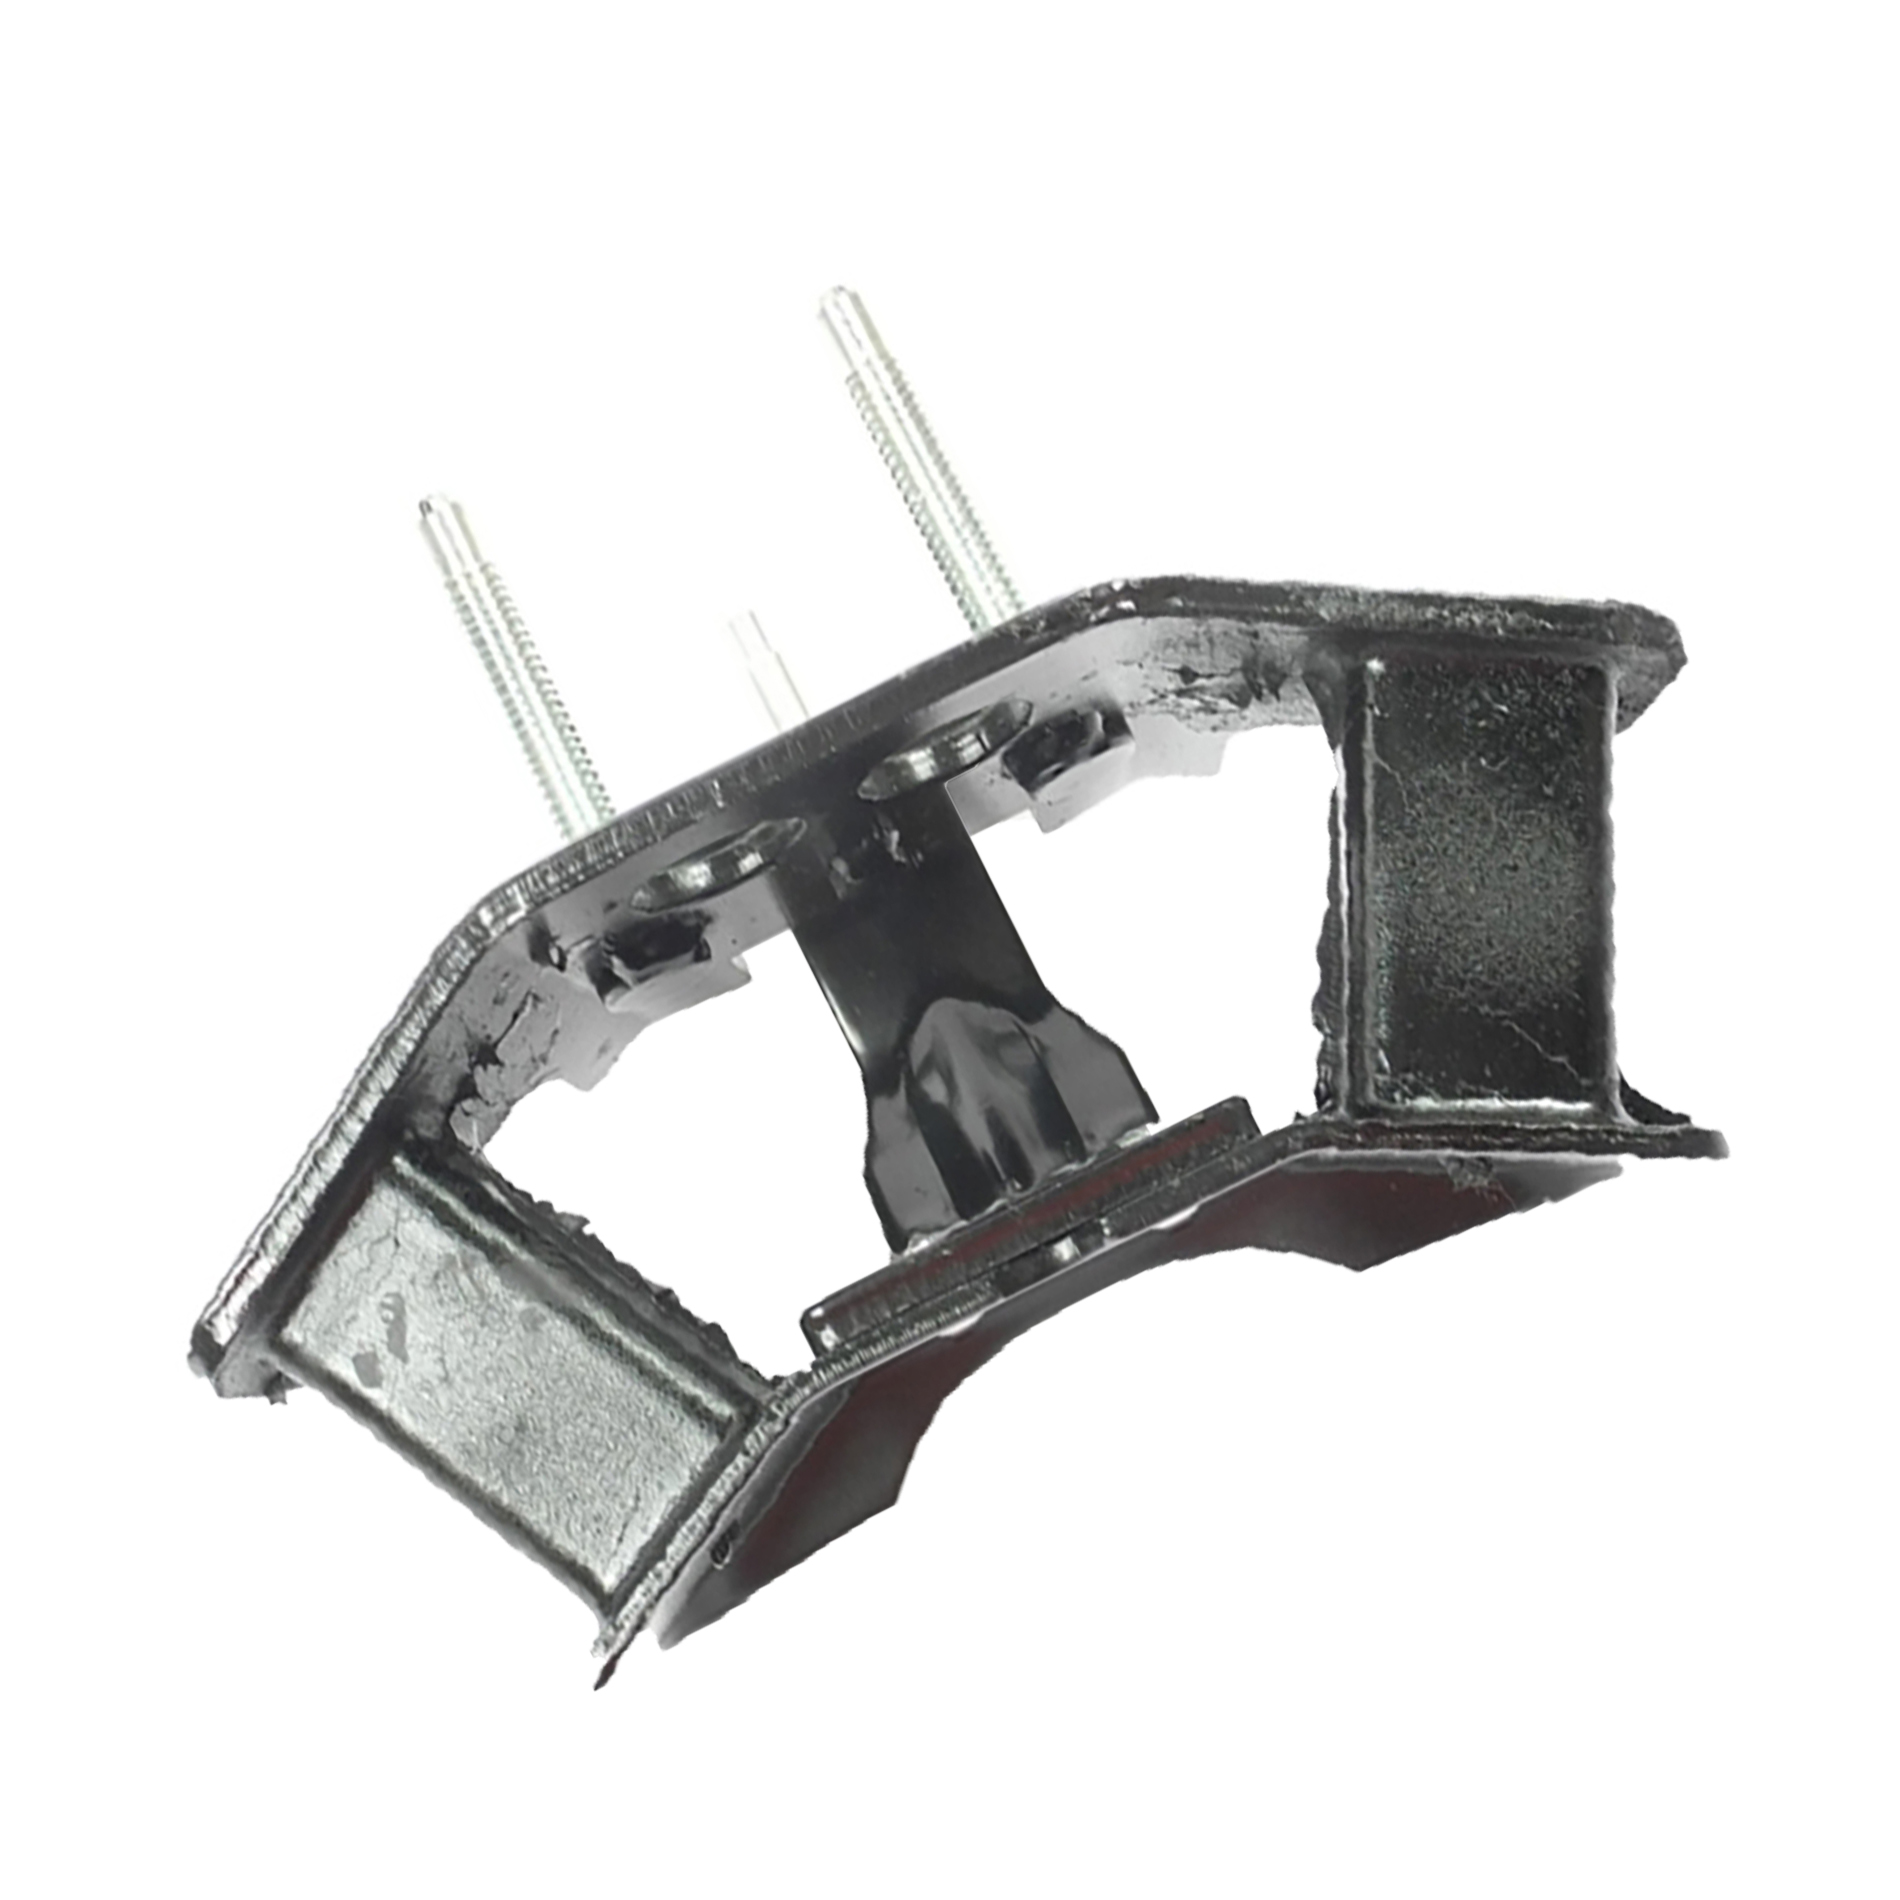 5466 For 2005-2007 Cadillac CTS 2.8L 2004-2006 3.6L Transmission Mount AT